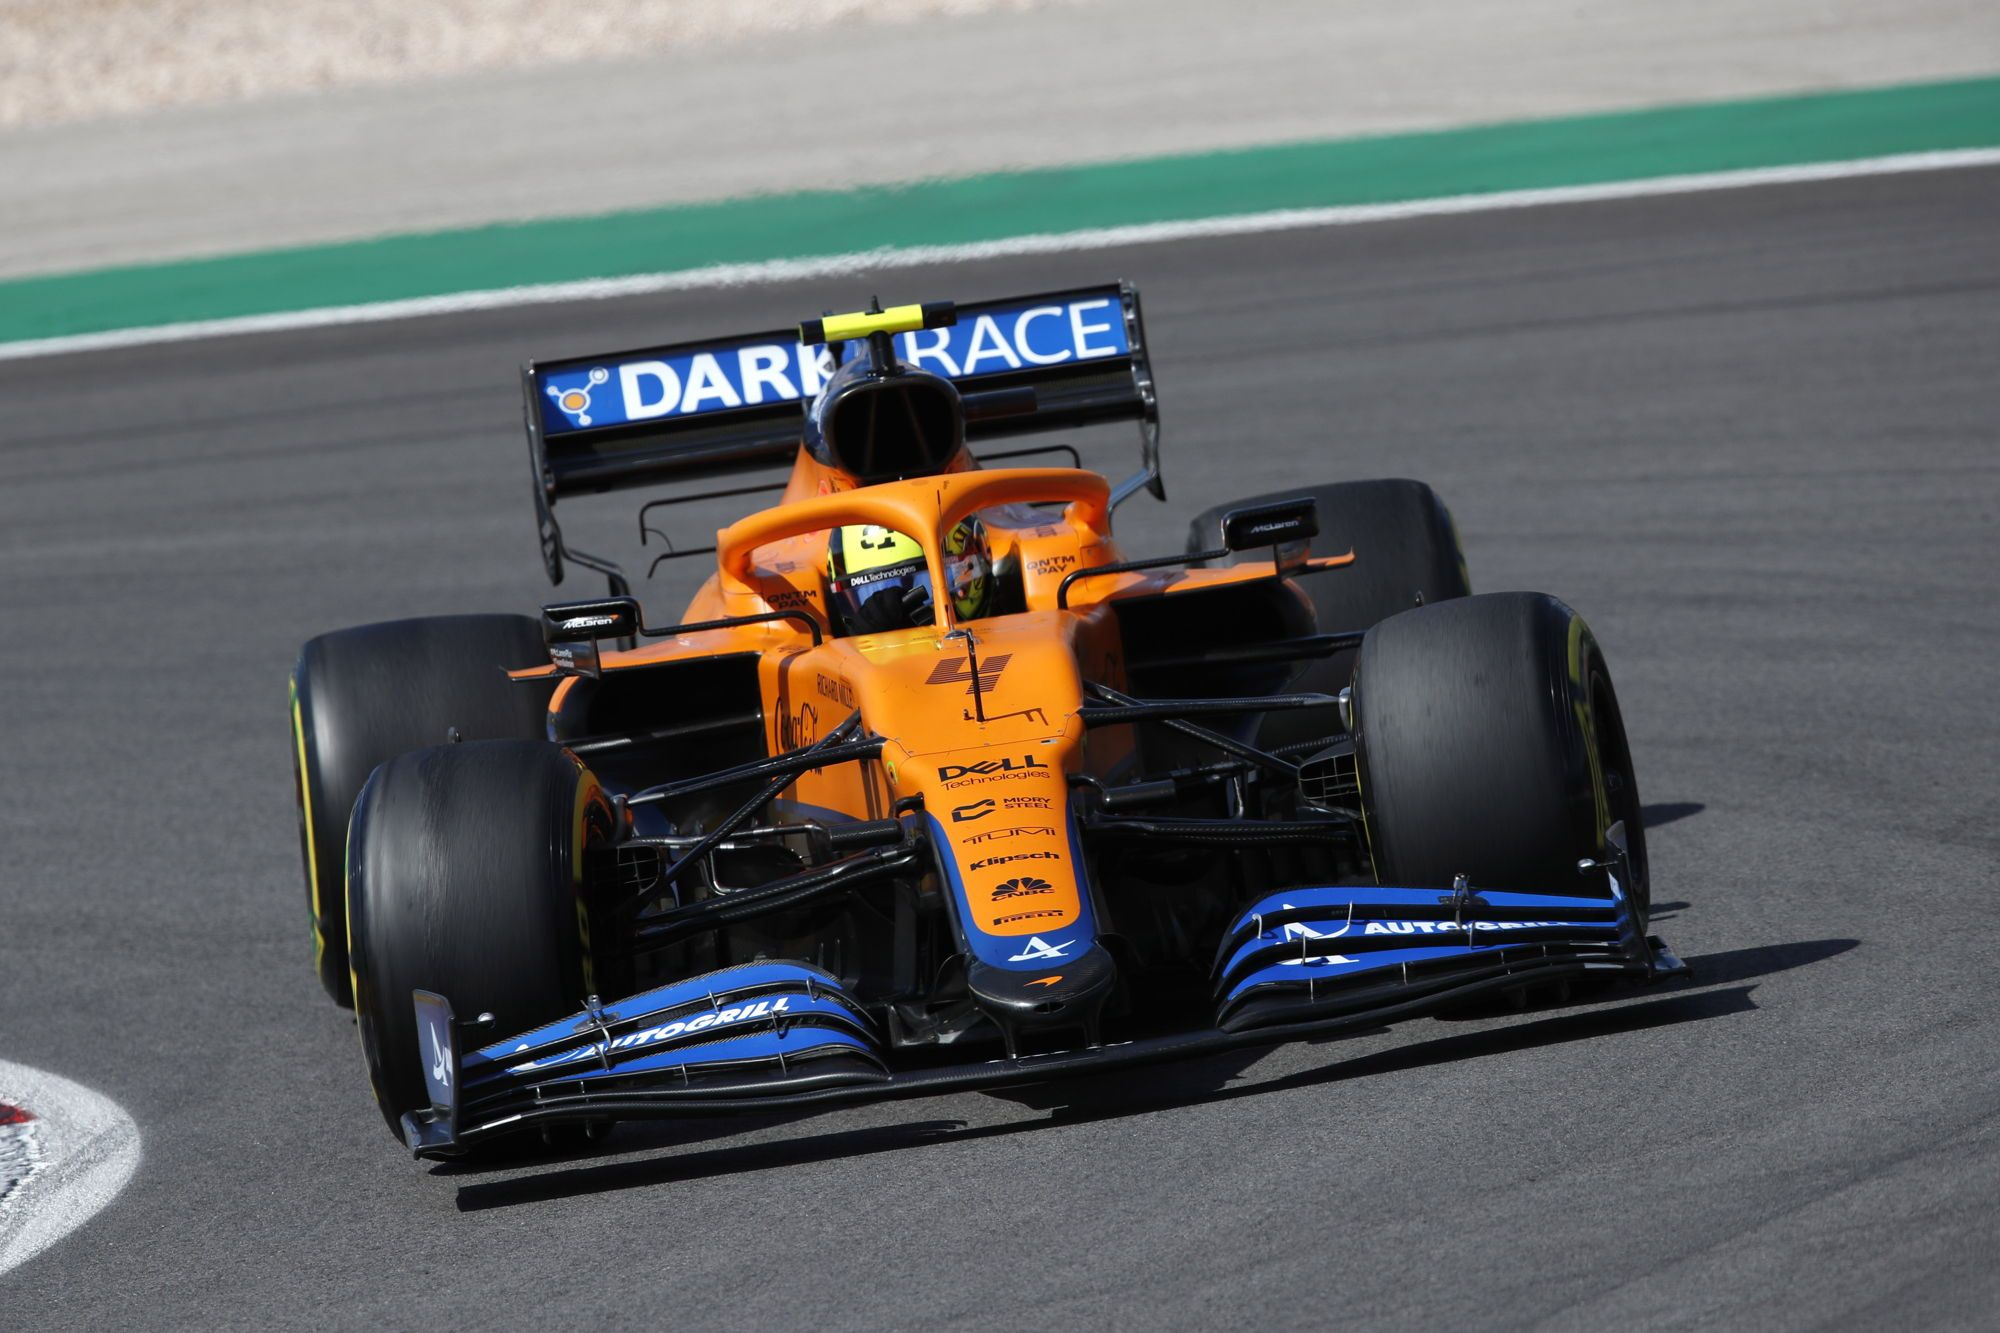 Midfield leader Norris still learning how to drive 'tricky' McLaren